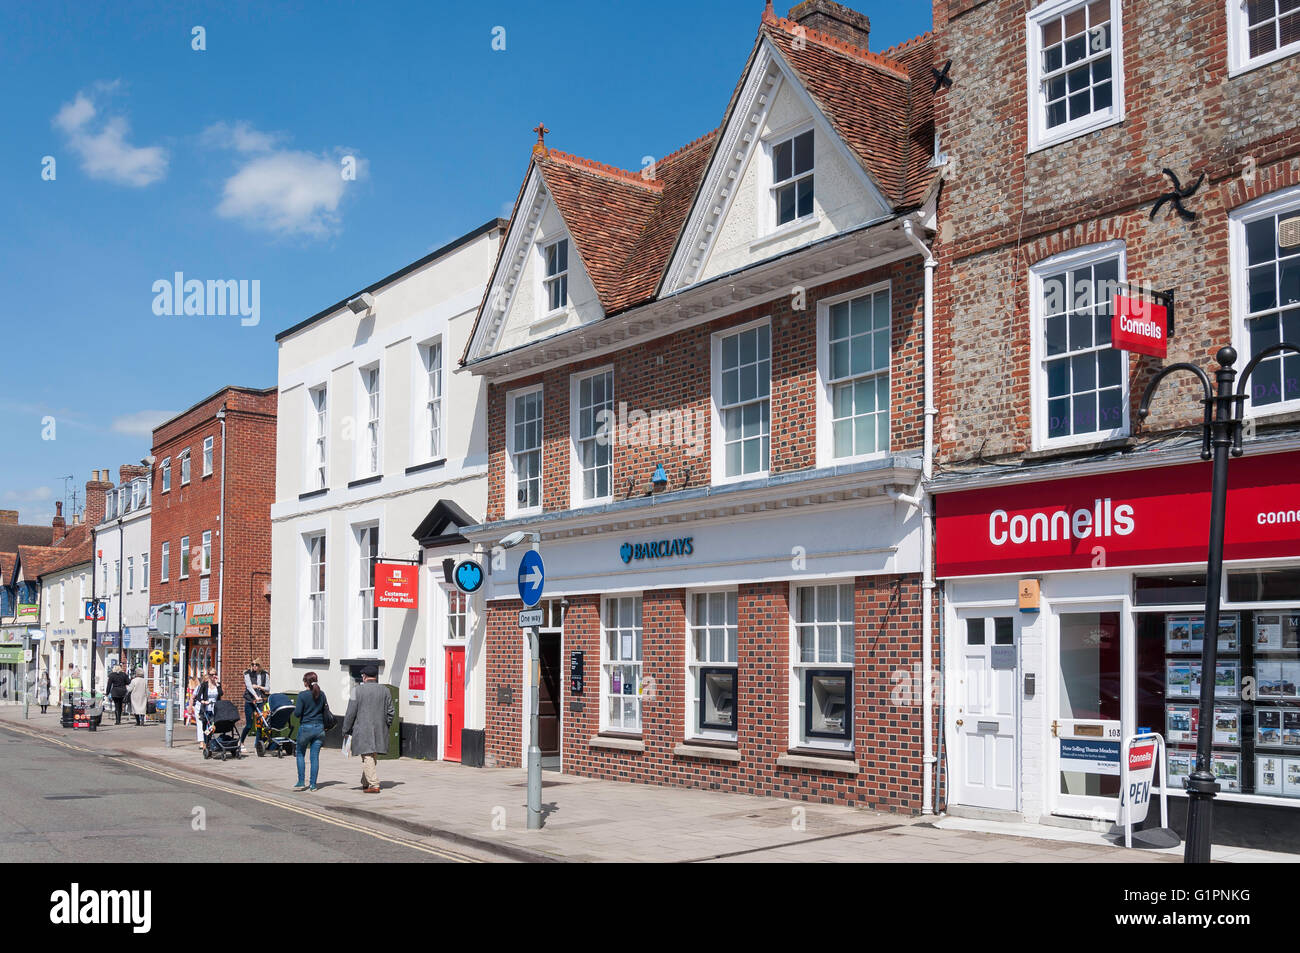 Upper High Street, Thame, Oxfordshire, England, United Kingdom - Stock Image